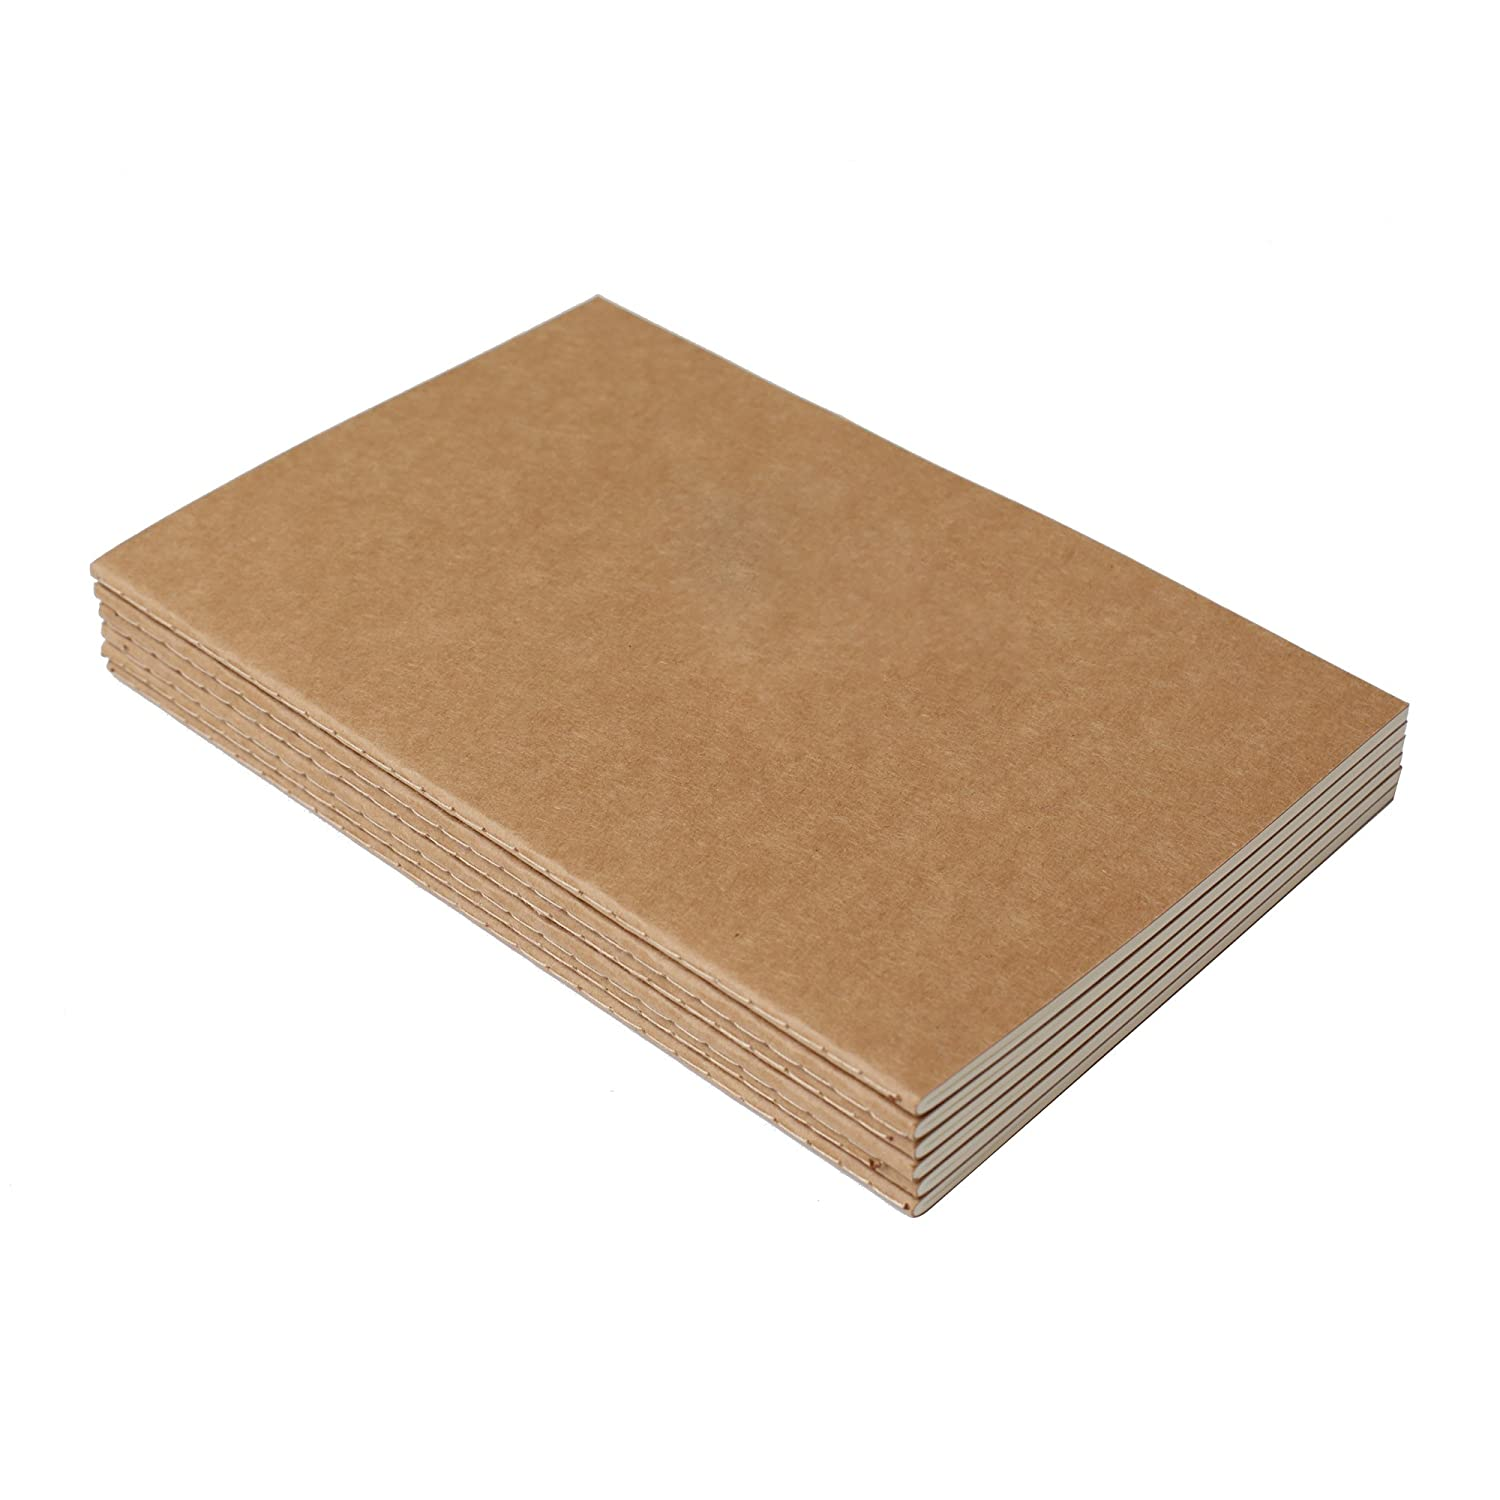 Kraft Brown Soft Cover Travel Journal Set With 6 Notebook Journals for Travelers 60 Square Grid Pages// 30 Sheets A5 Size 210 mm x 140 mm